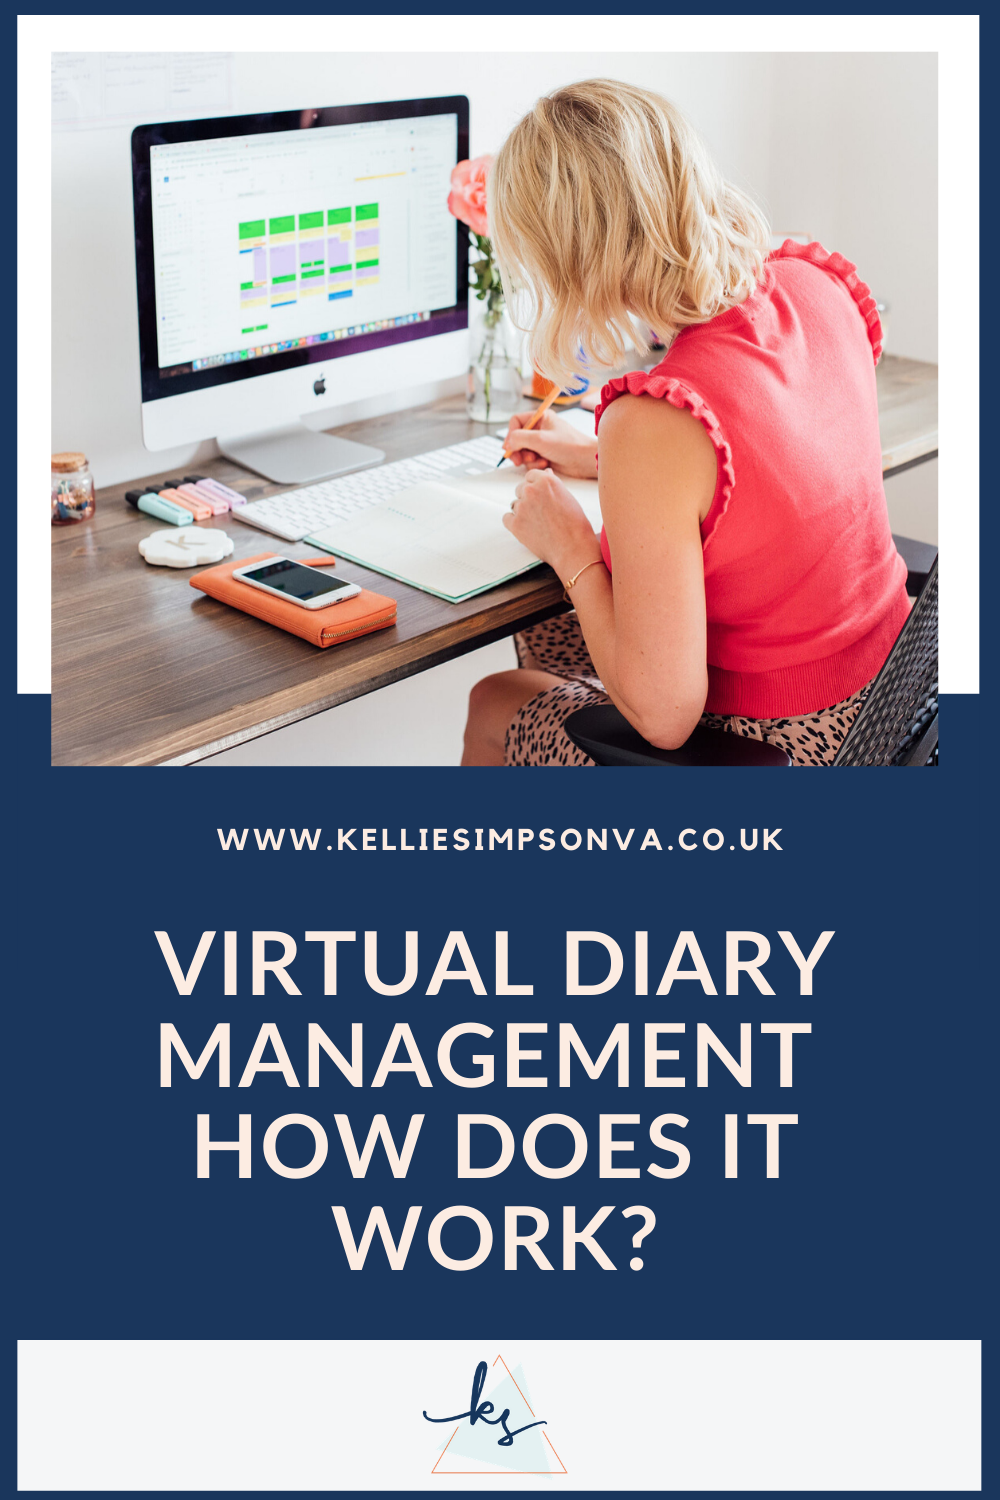 Diary management - how does it work?